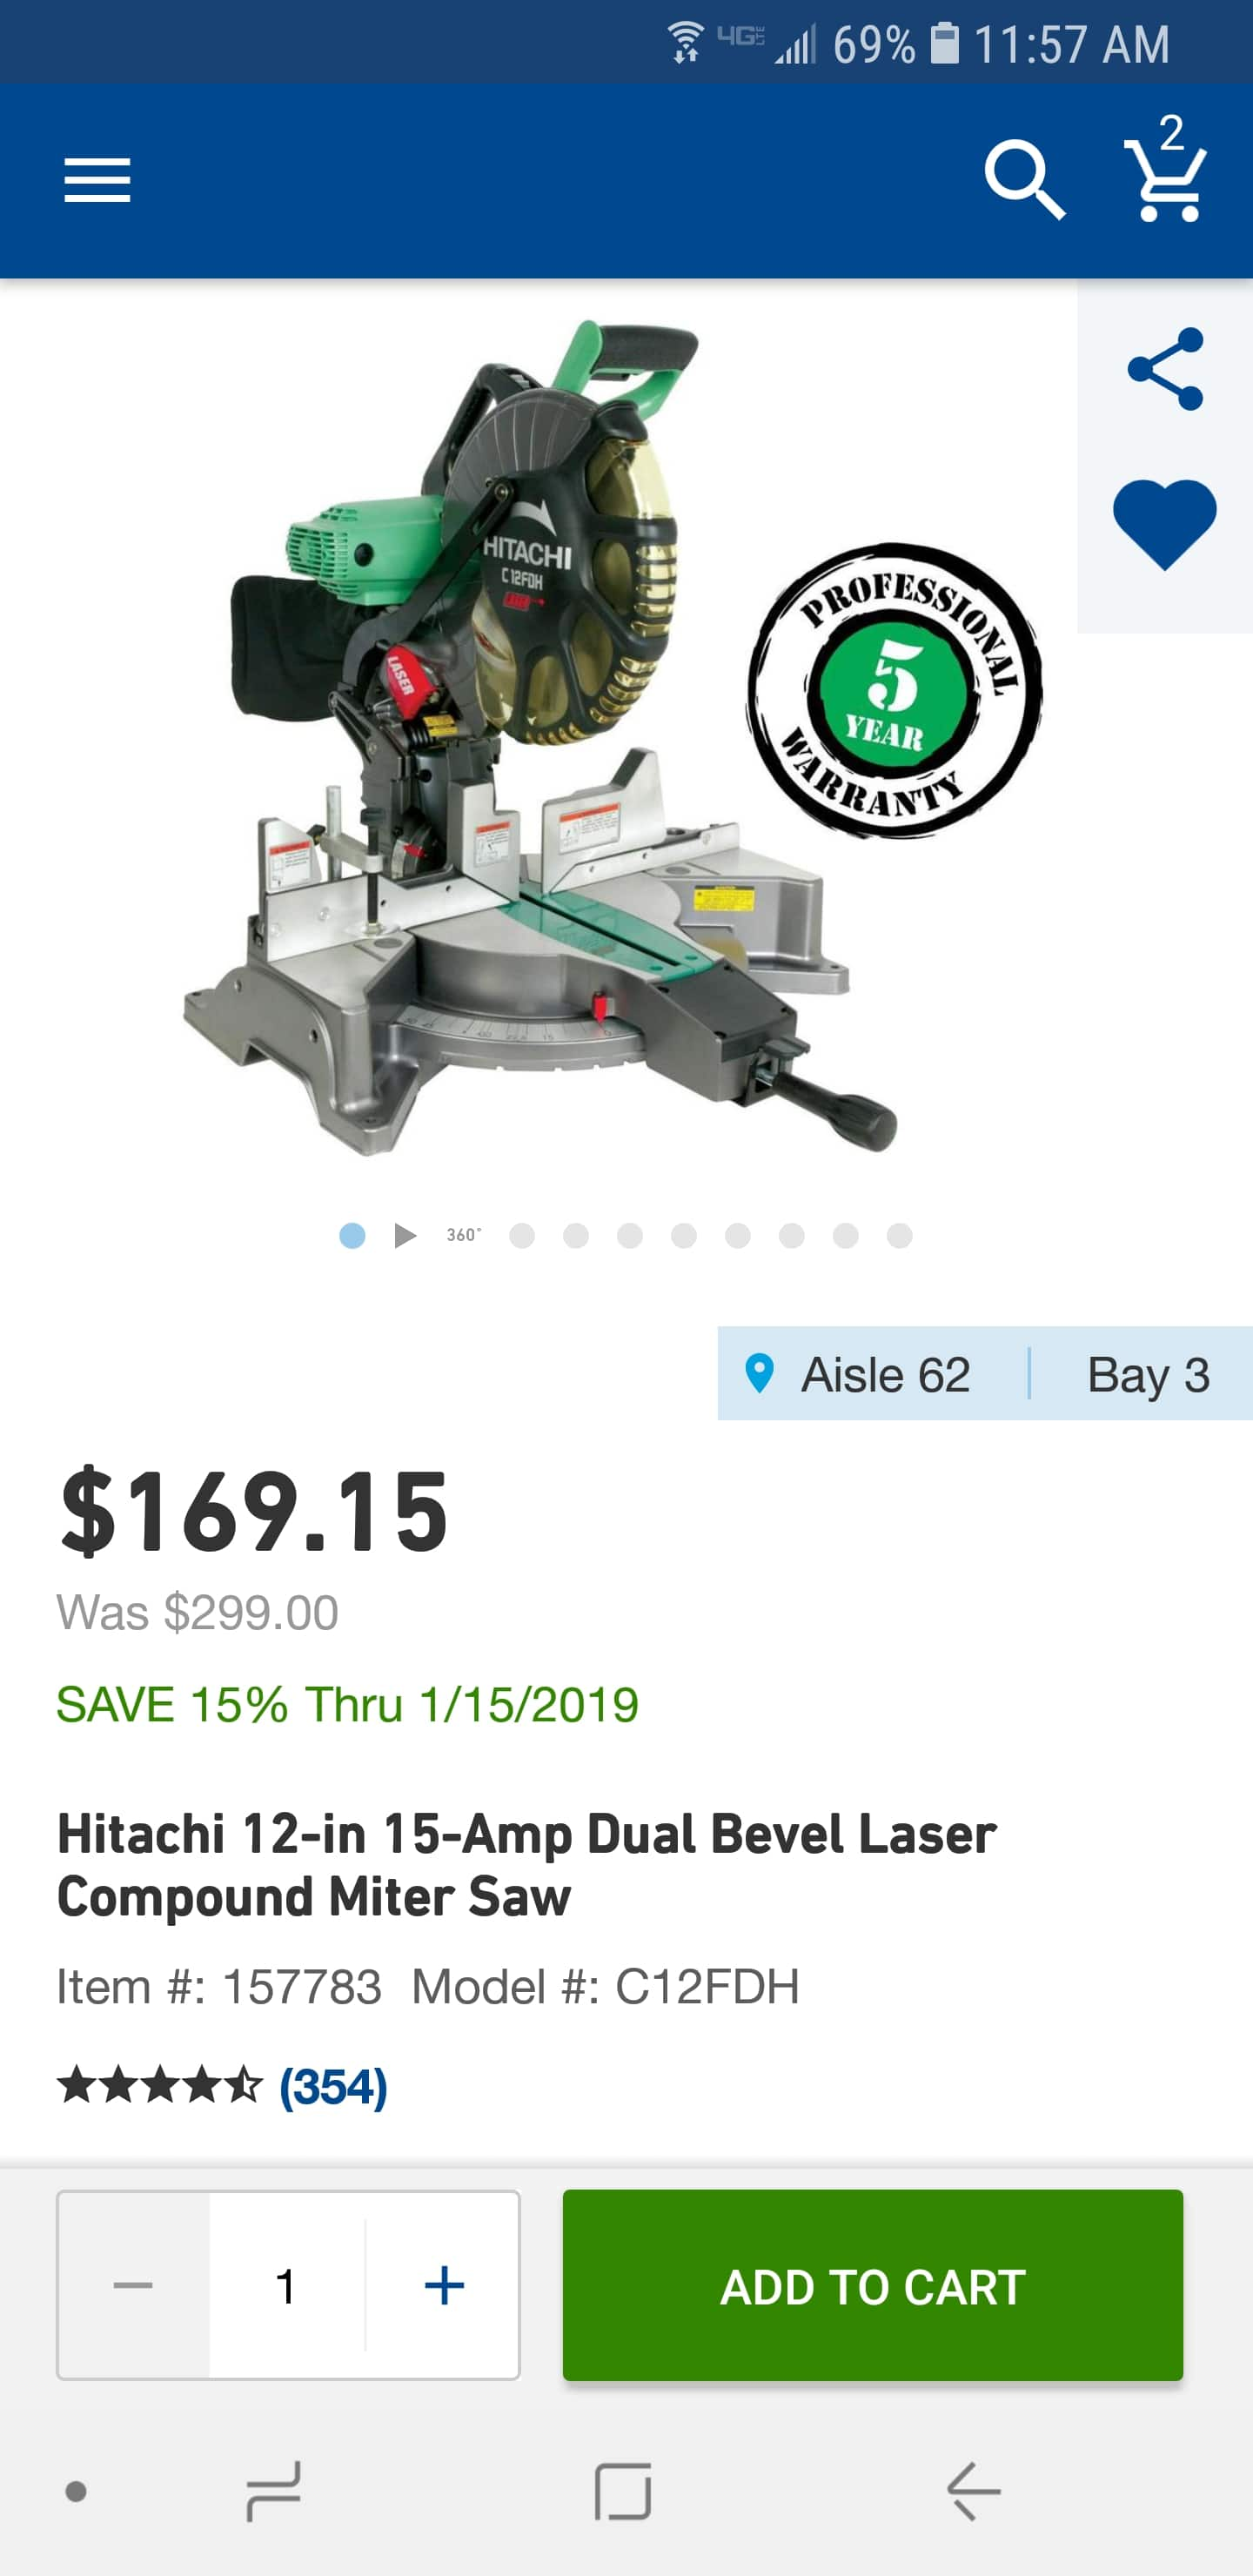 LOWE'S - Hitachi 12-in 15-Amp Dual Bevel Laser Compound Miter Saw $169.15